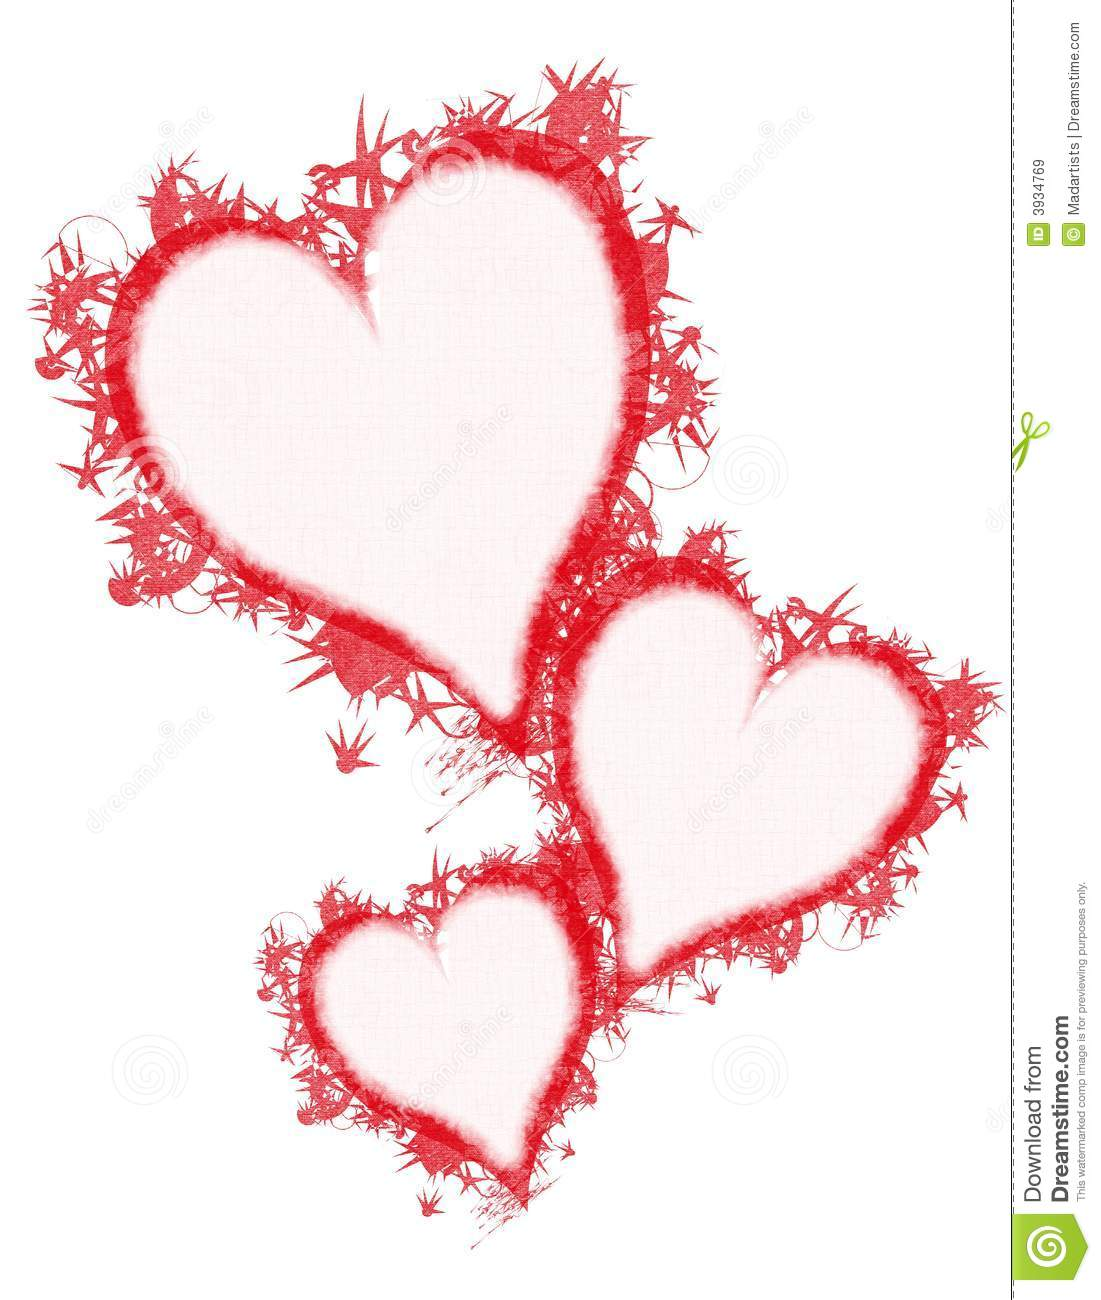 Feather Grunge Red Hearts Clip Art Royalty Free Stock ...